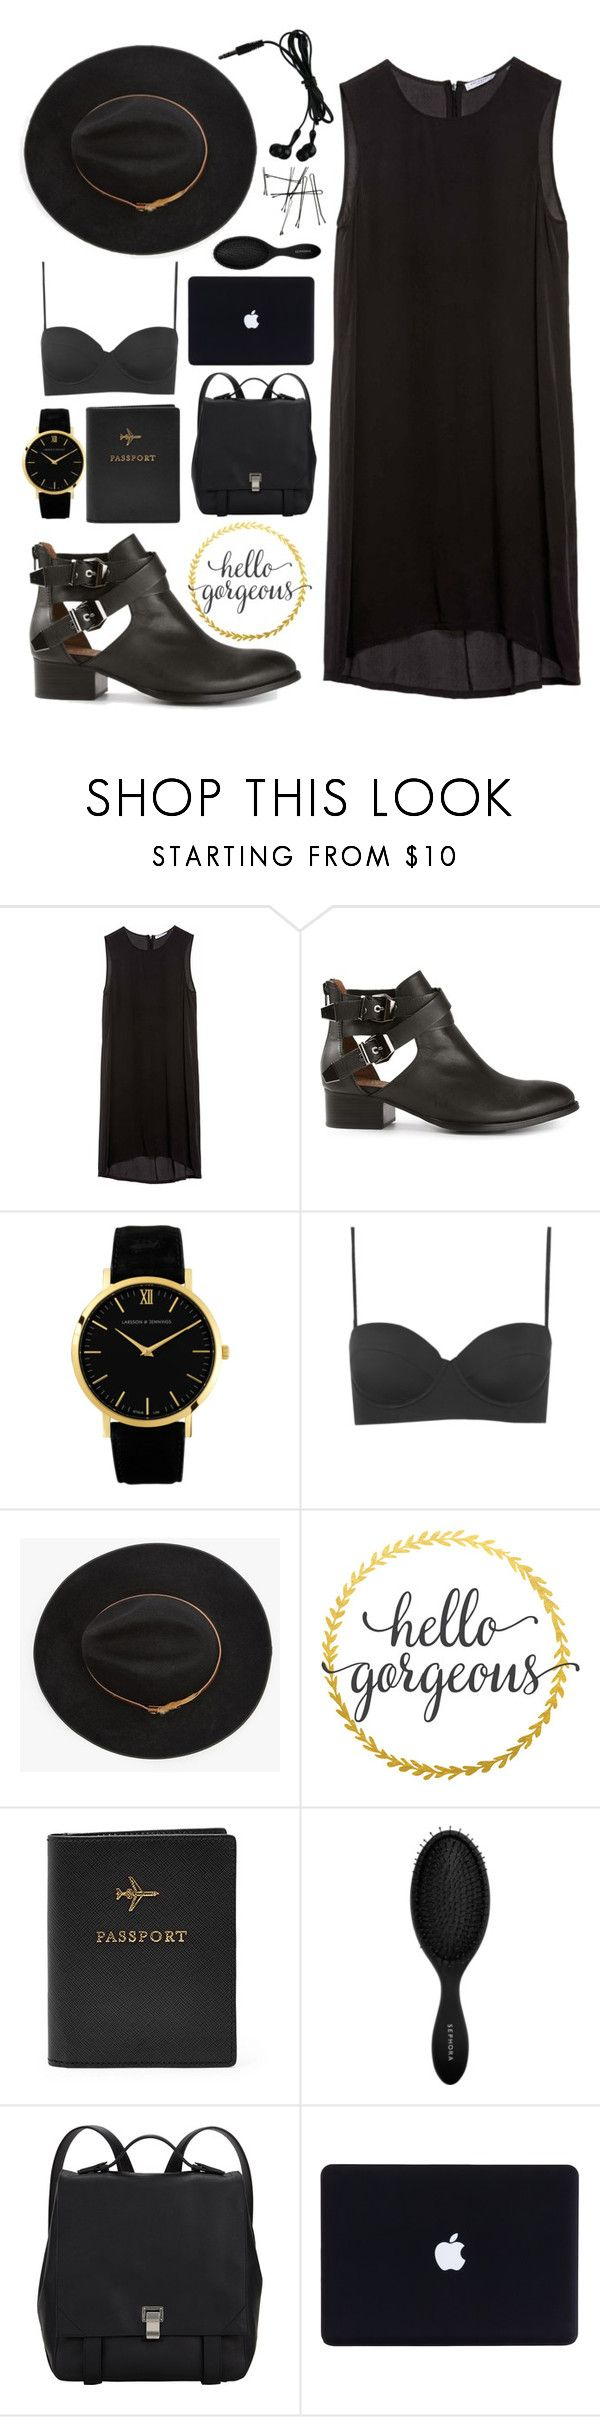 """""""#109 - Airport"""" by lolohohokoko ❤ liked on Polyvore featuring beauty, Equipment, Jeffrey Campbell, Larsson & Jennings, Topshop, Fallenbrokenstreet, FOSSIL, BOBBY, Sephora Collection and Proenza Schouler"""